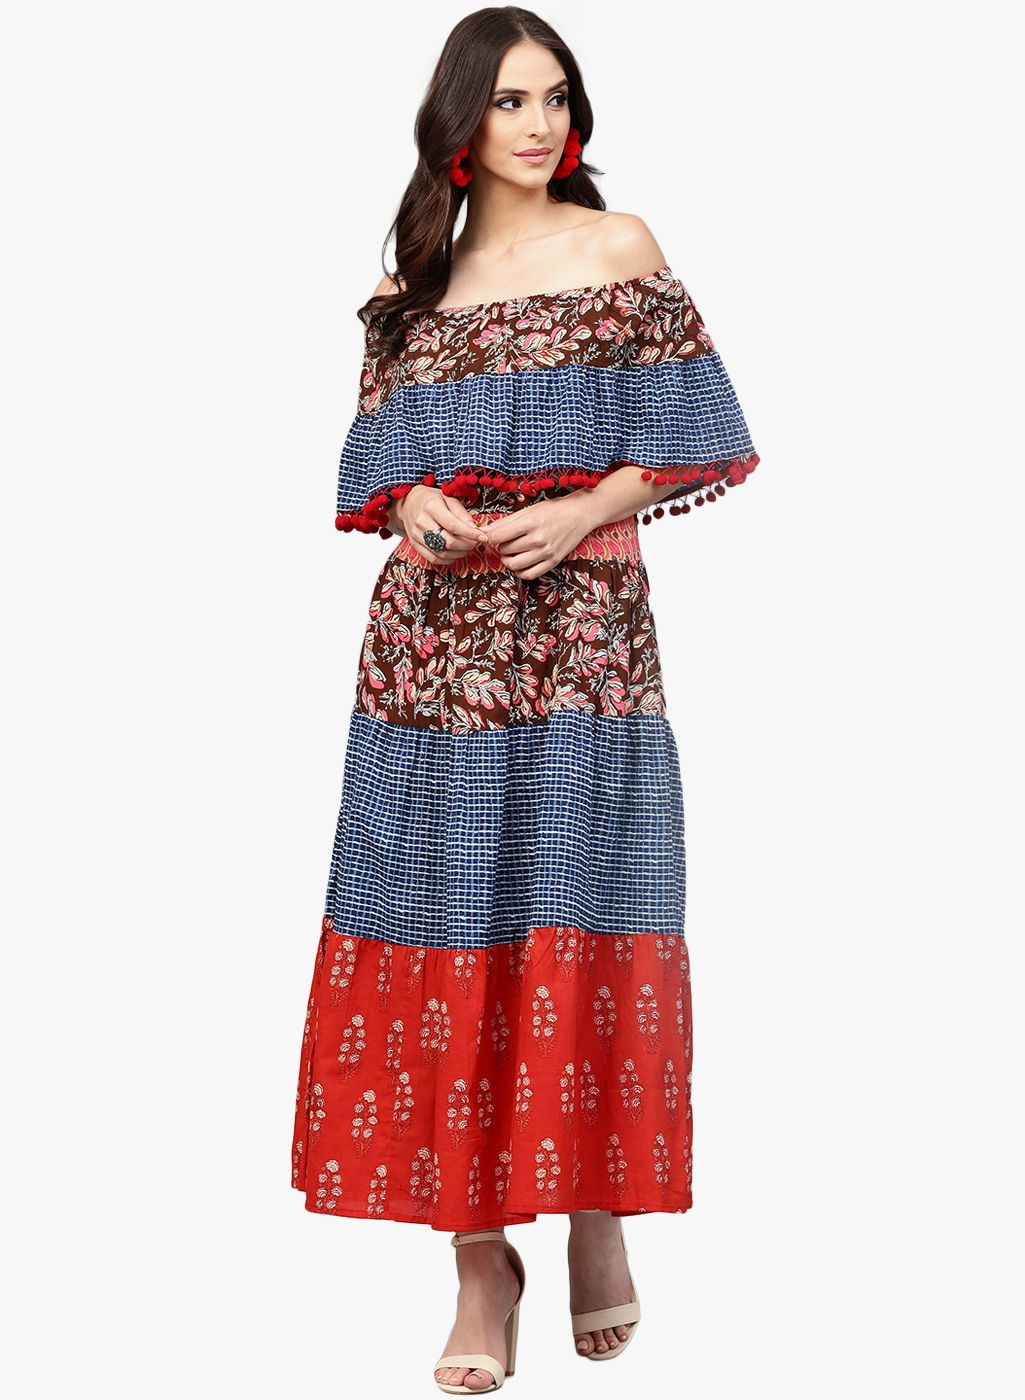 797dd2df4b56 Aks Multicolored Printed Off Shoulder Flared Maxi Kurta  Printed   Offshoulder  Flared  Maxi  Kurta